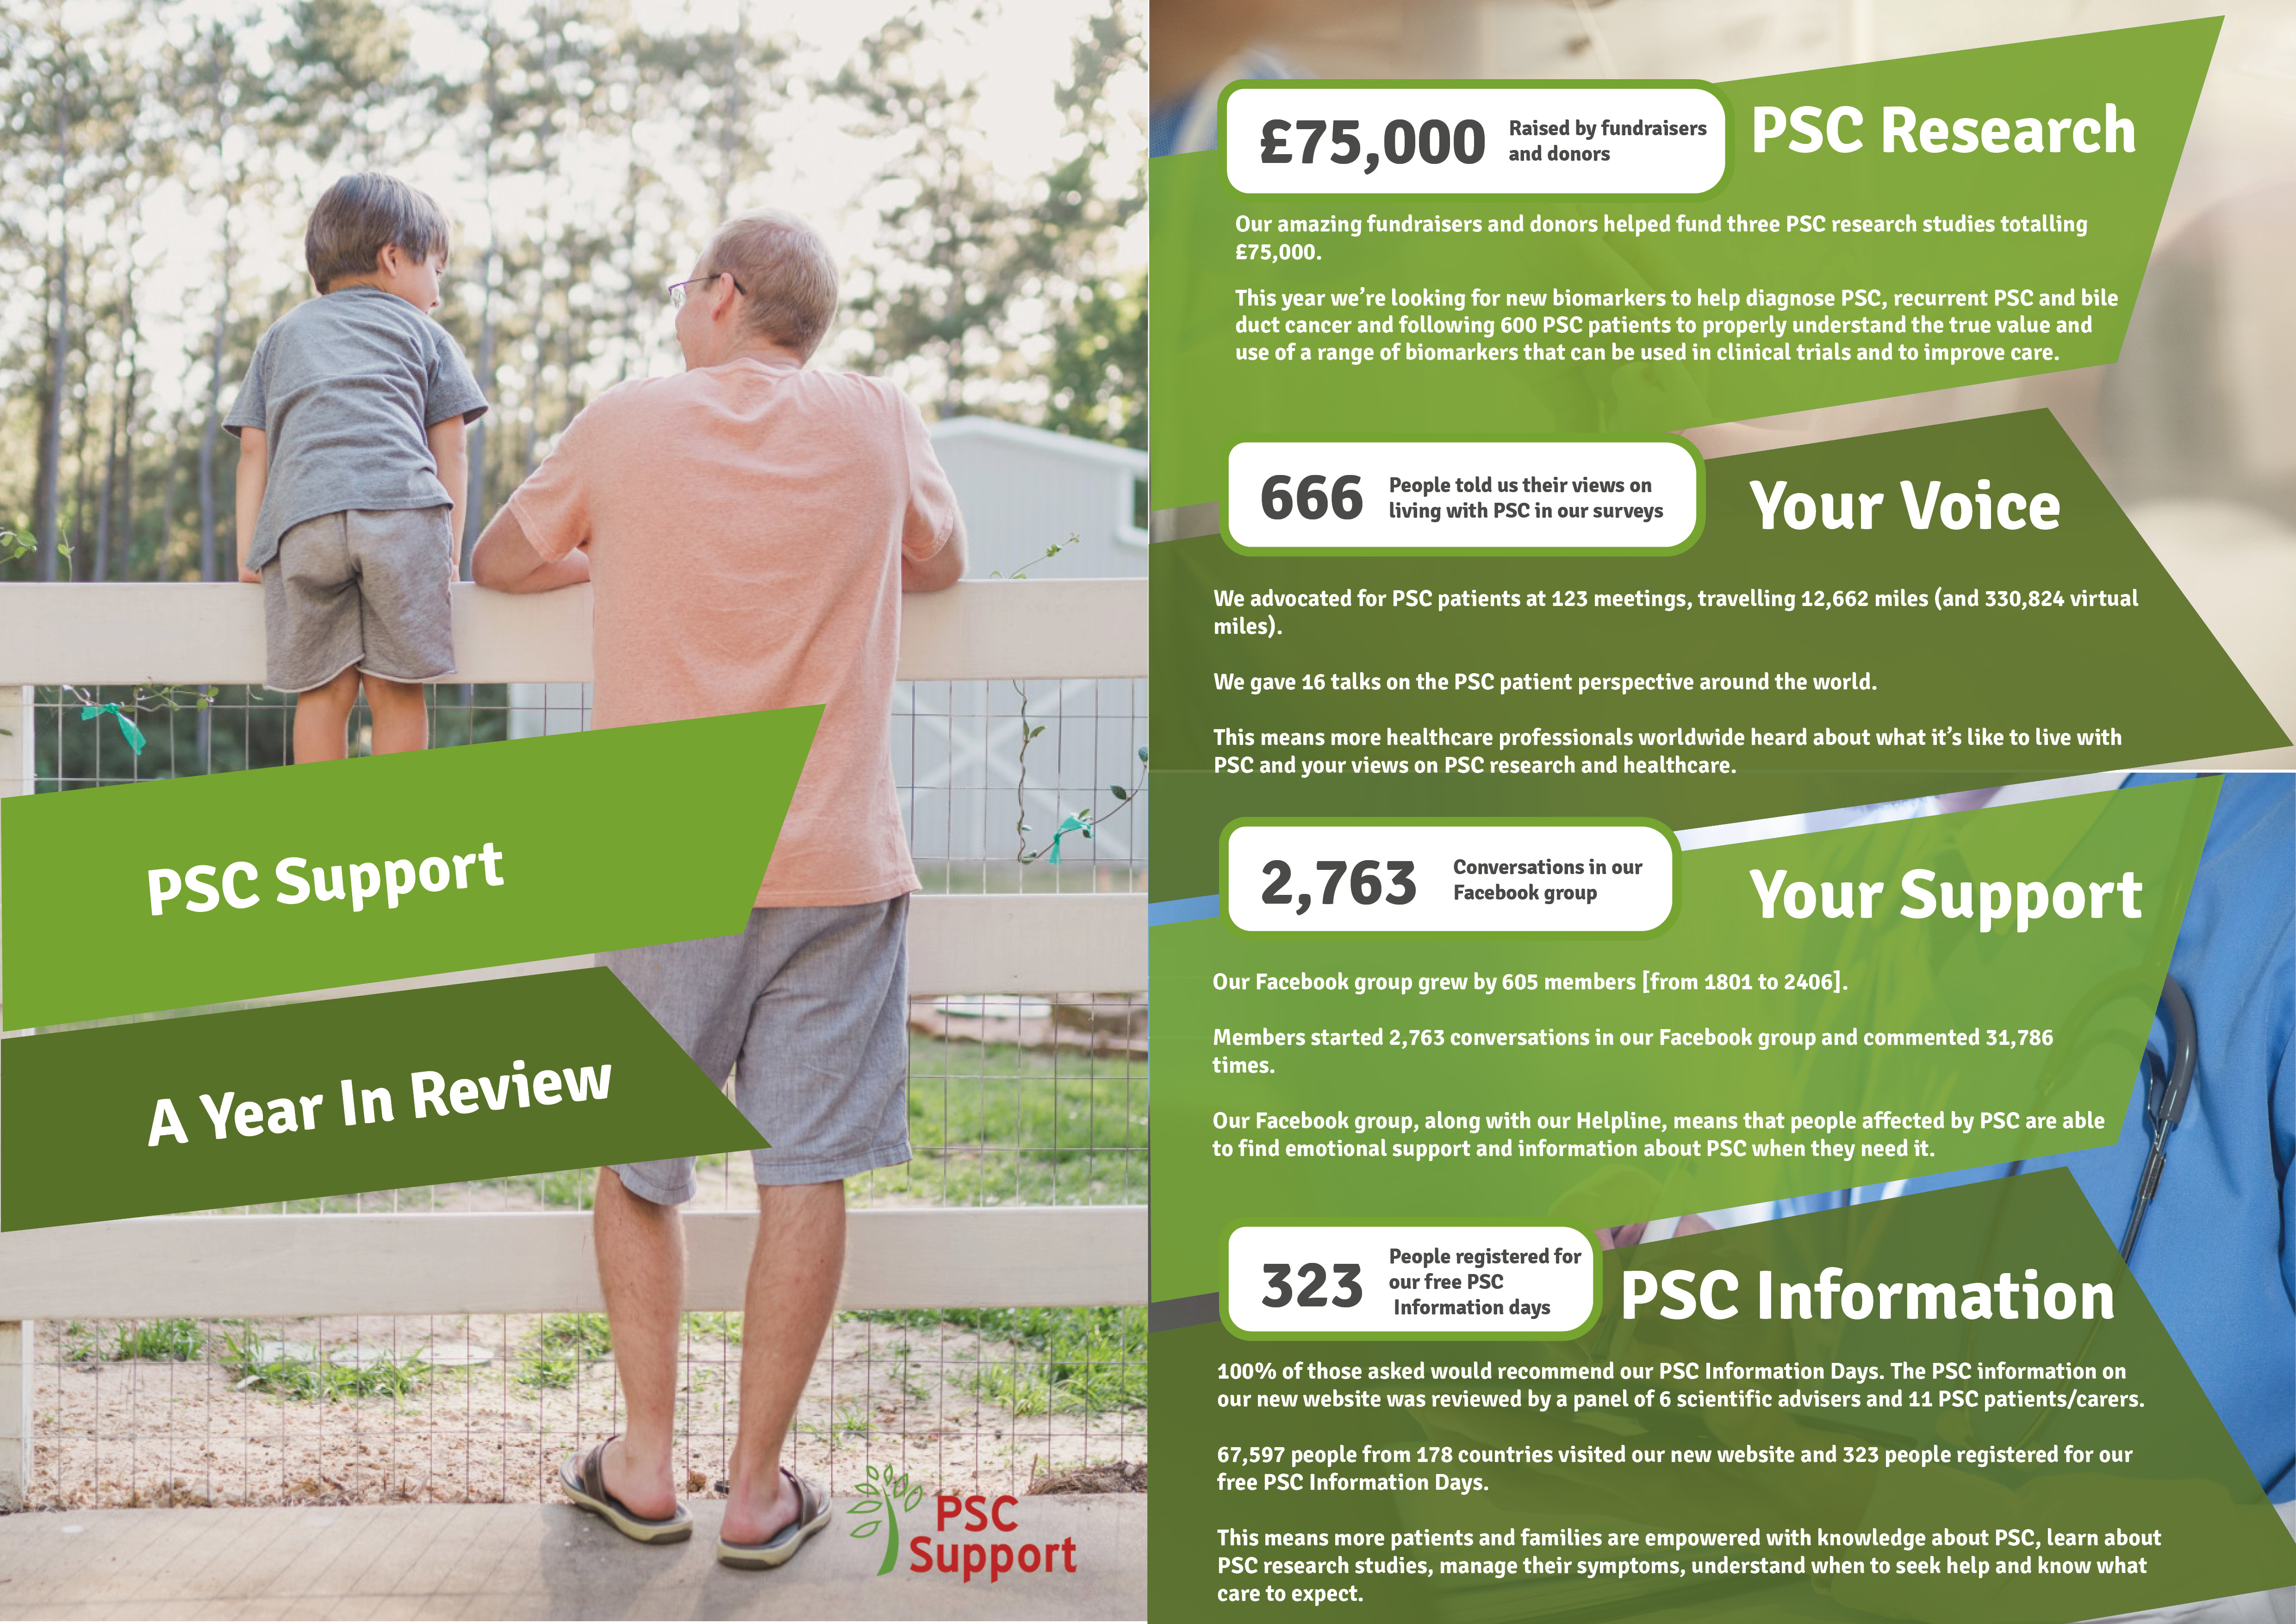 PSC Support a year in review 2019